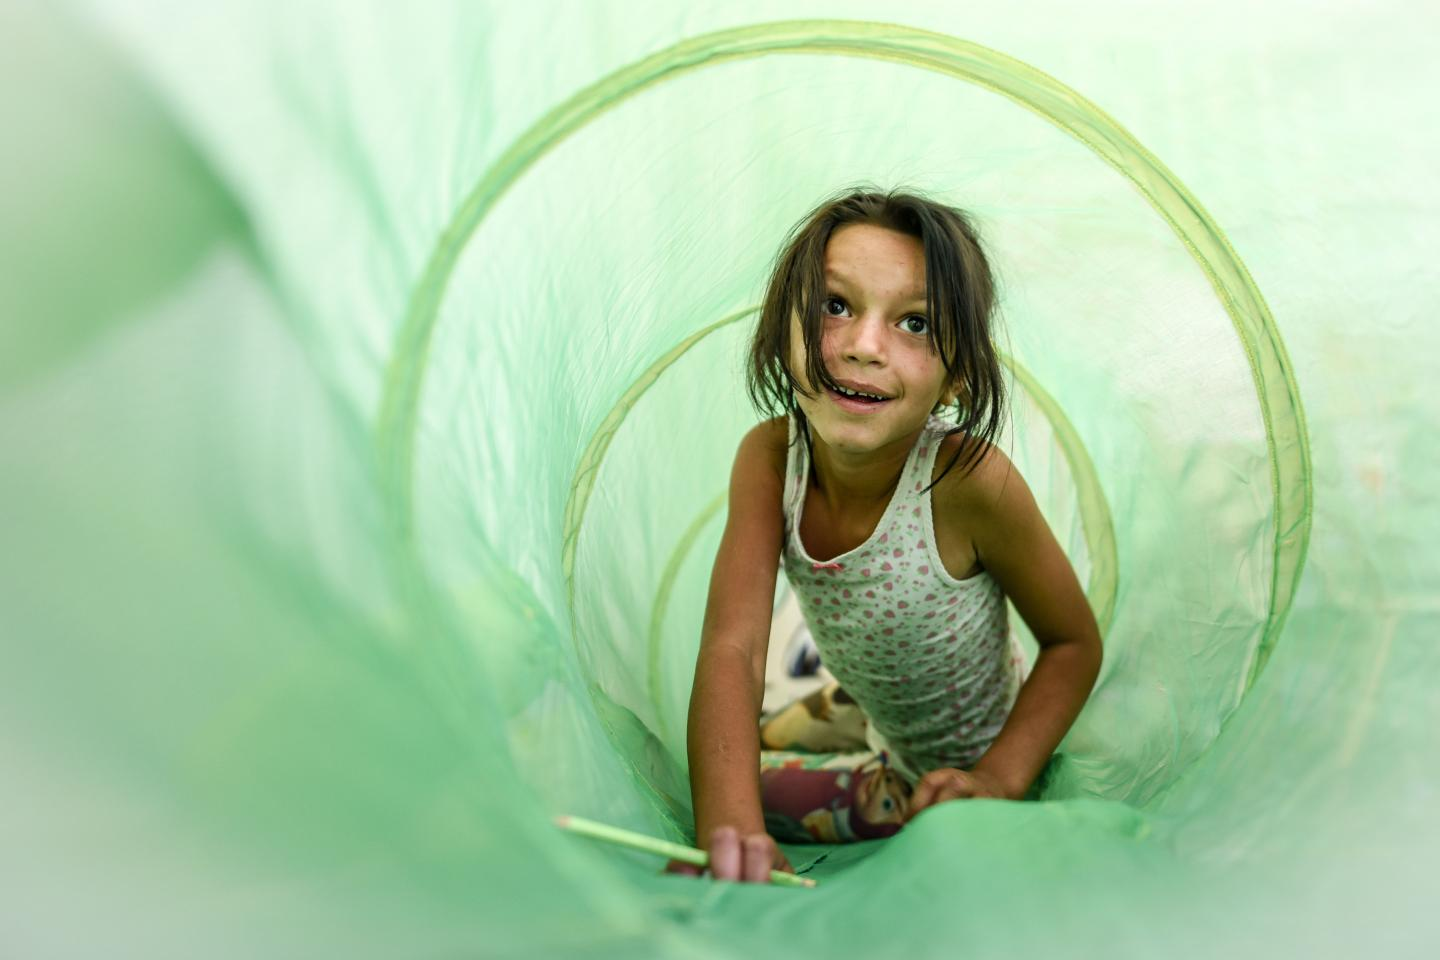 A small girl playing inside a cotton hose toy for small children called caterpillar